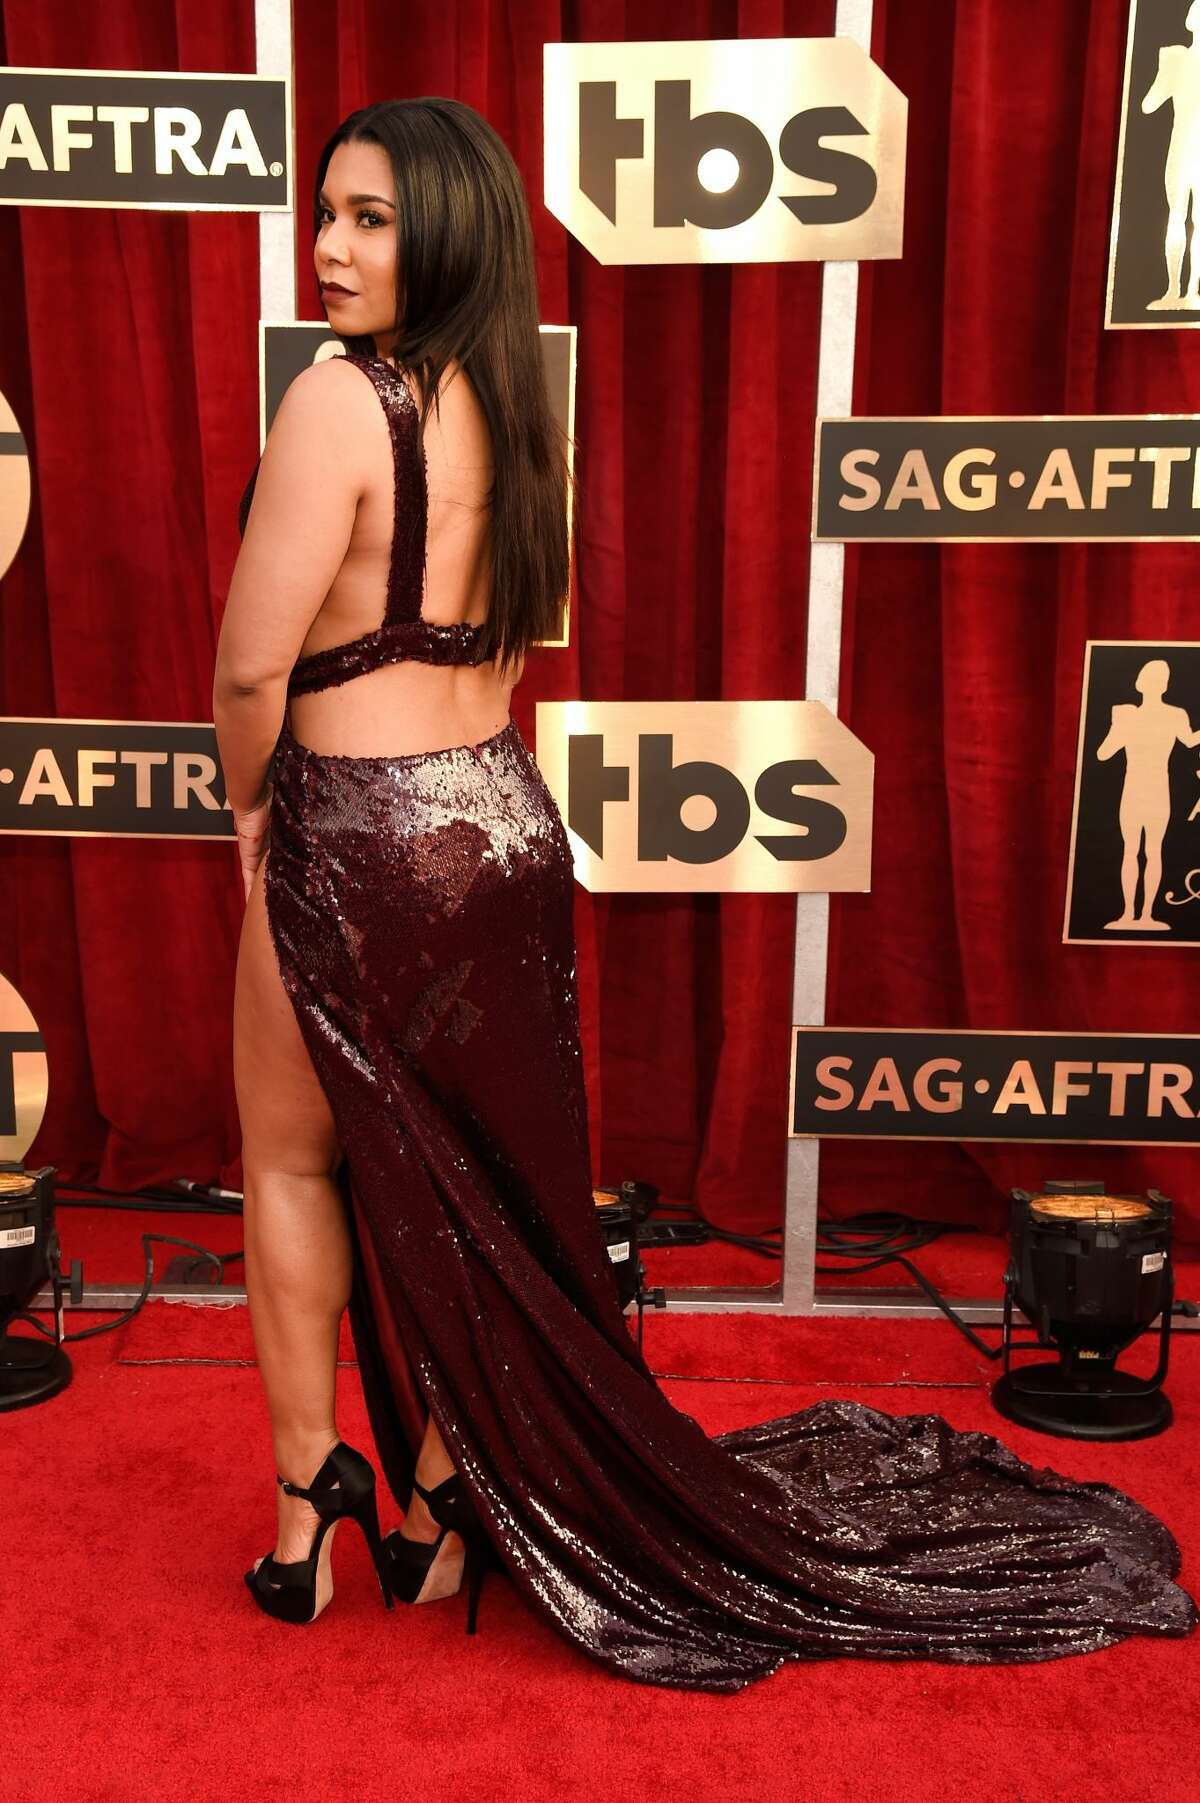 Jessica Pimentel attends The 23rd Annual Screen Actors Guild Awards on January 29, 2017.